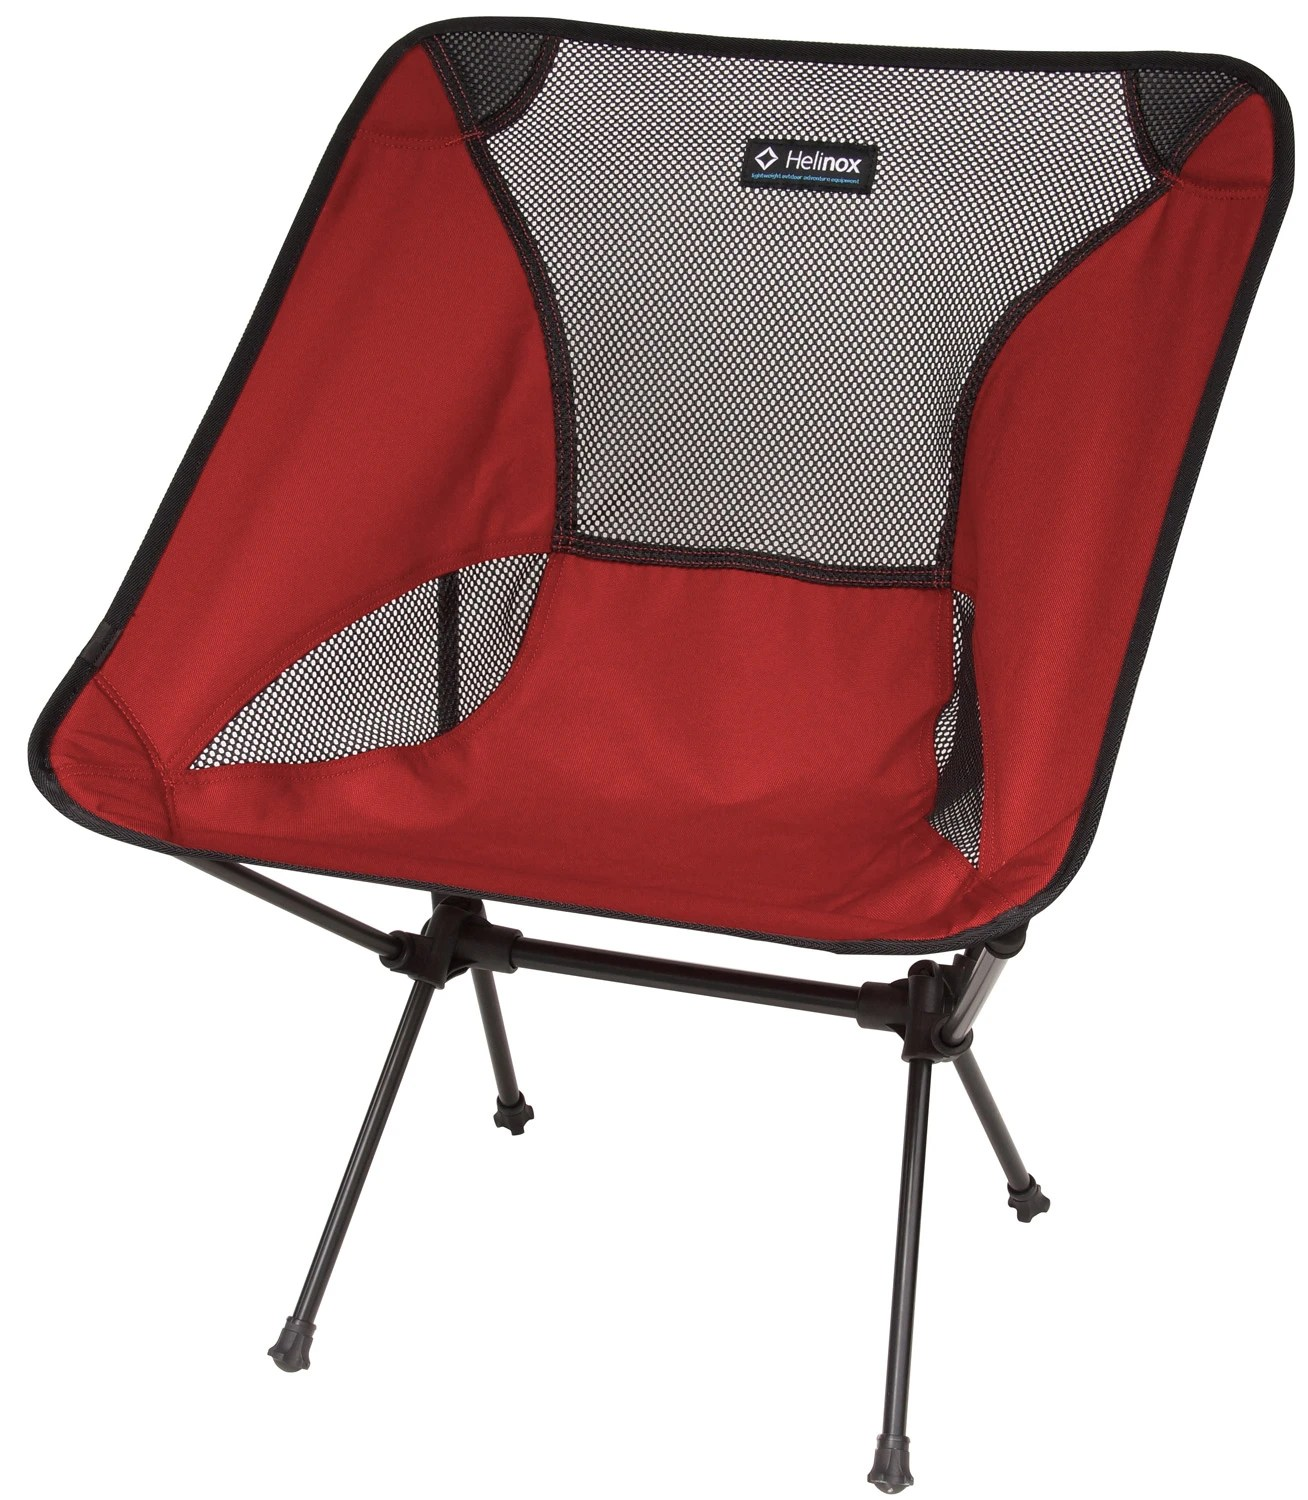 helinox ground chair tufted dining chairs sale on one camping up to 50 off